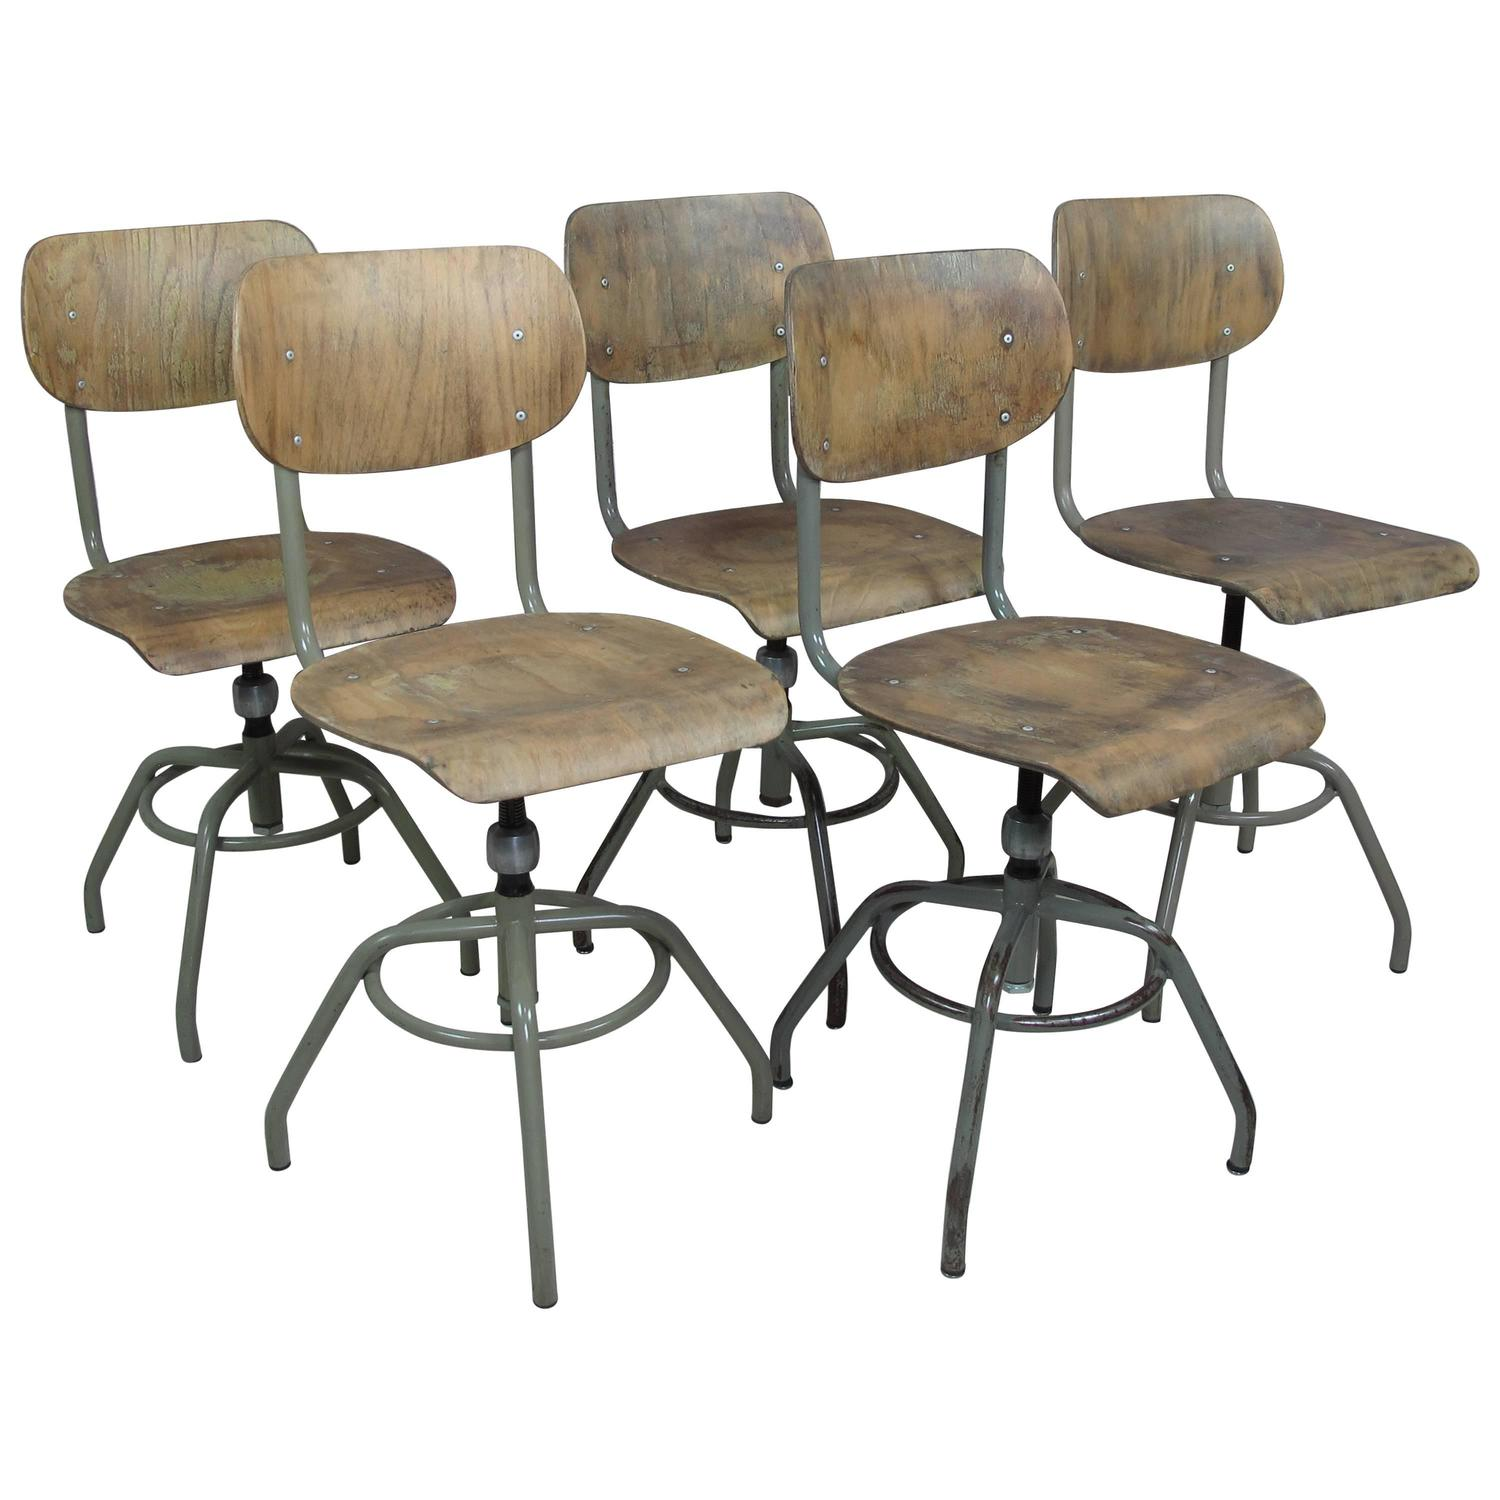 Unique Industrial Pivot Stools By Tubax Set Of Four At